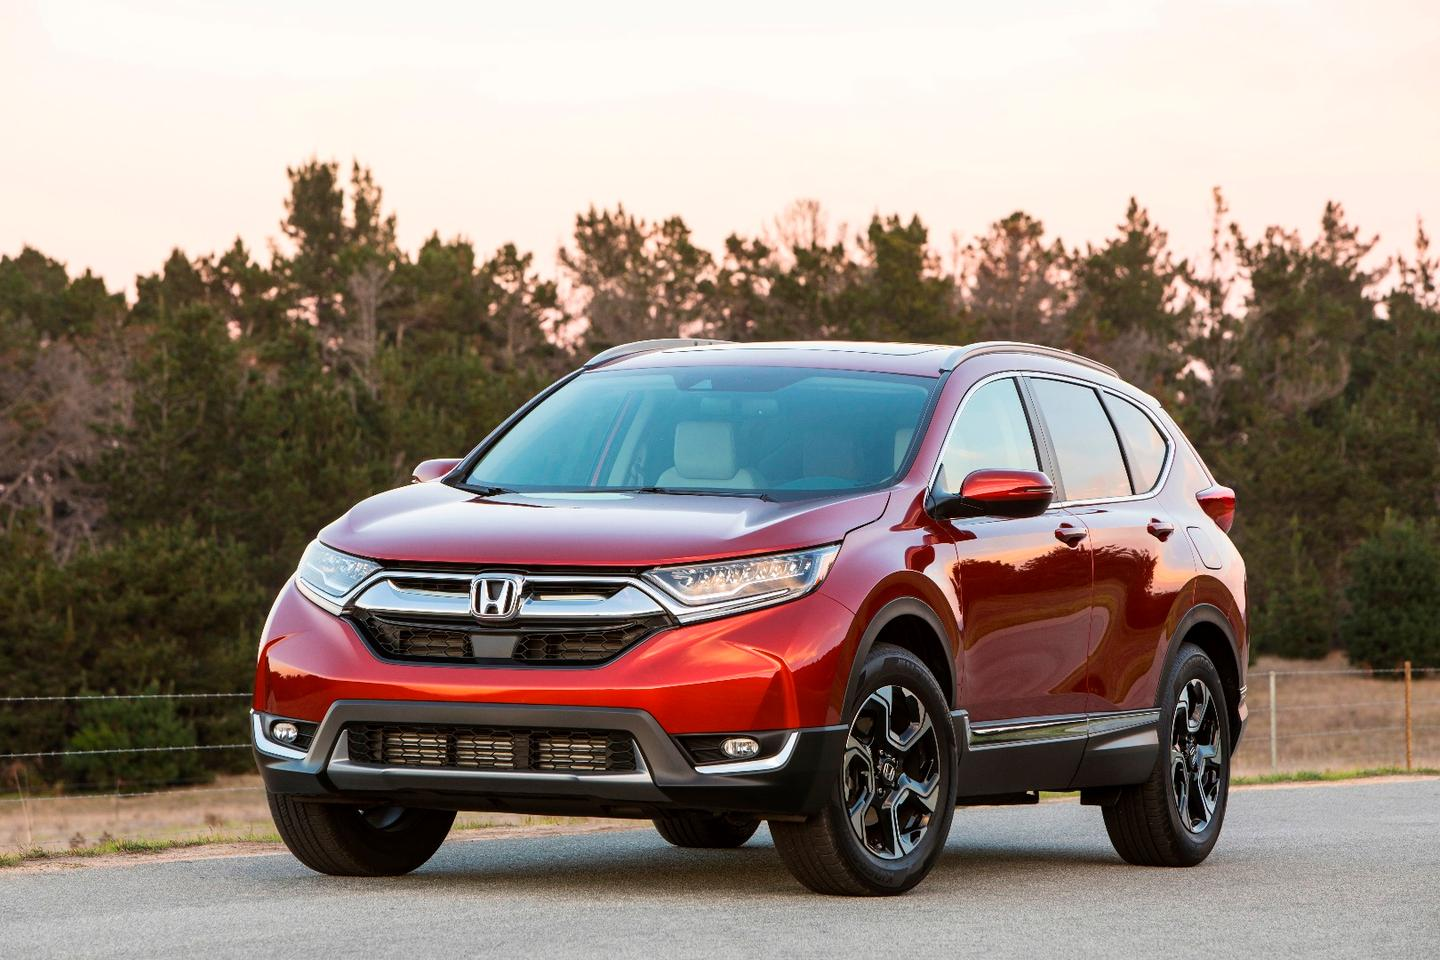 The 2018 CR-V is definitely not a race car, nor is it in a big hurry to get places, but it's not a slug either